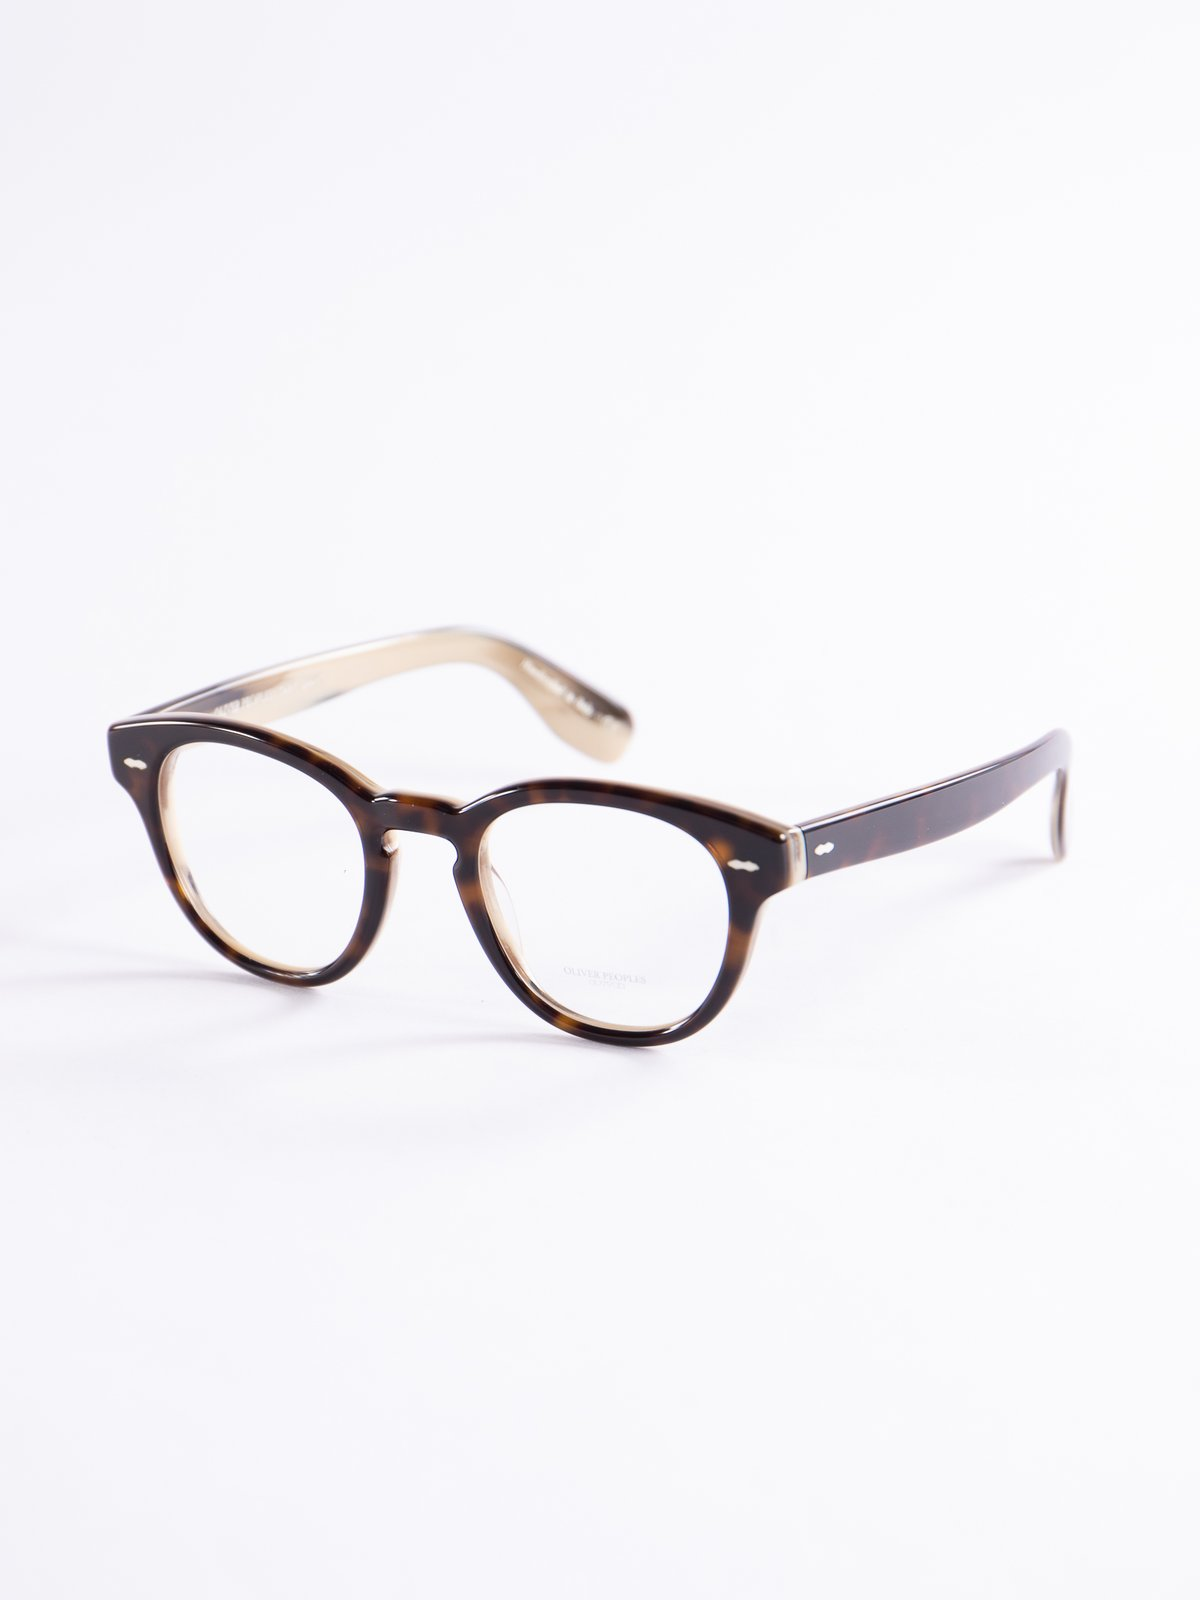 362/Horn Cary Grant Optical Frame - Image 3